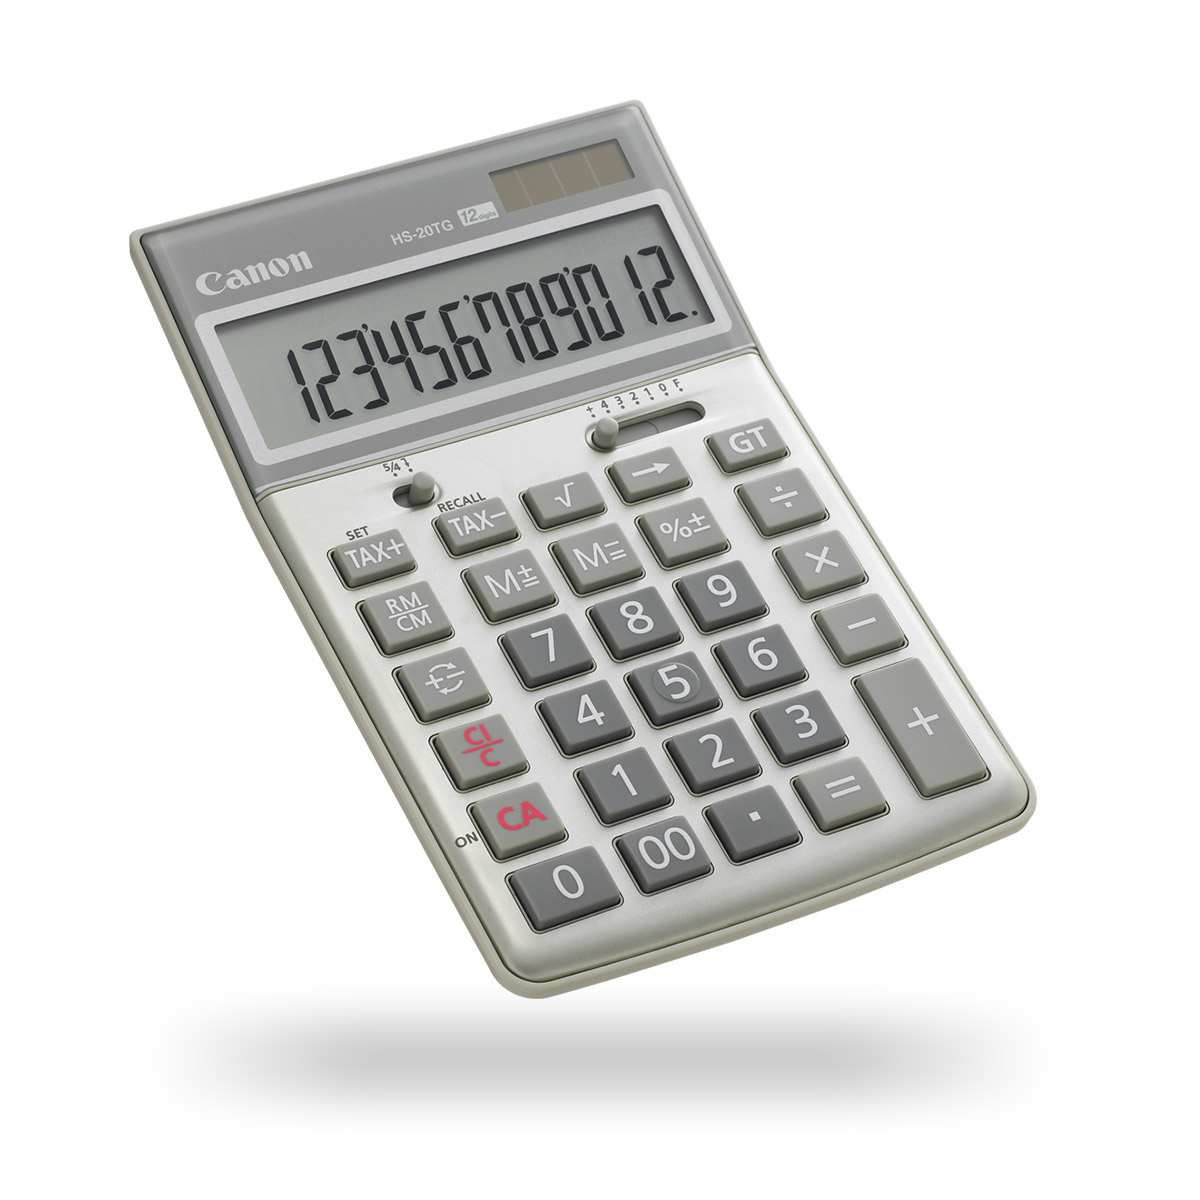 Canon HS-20TG calculator